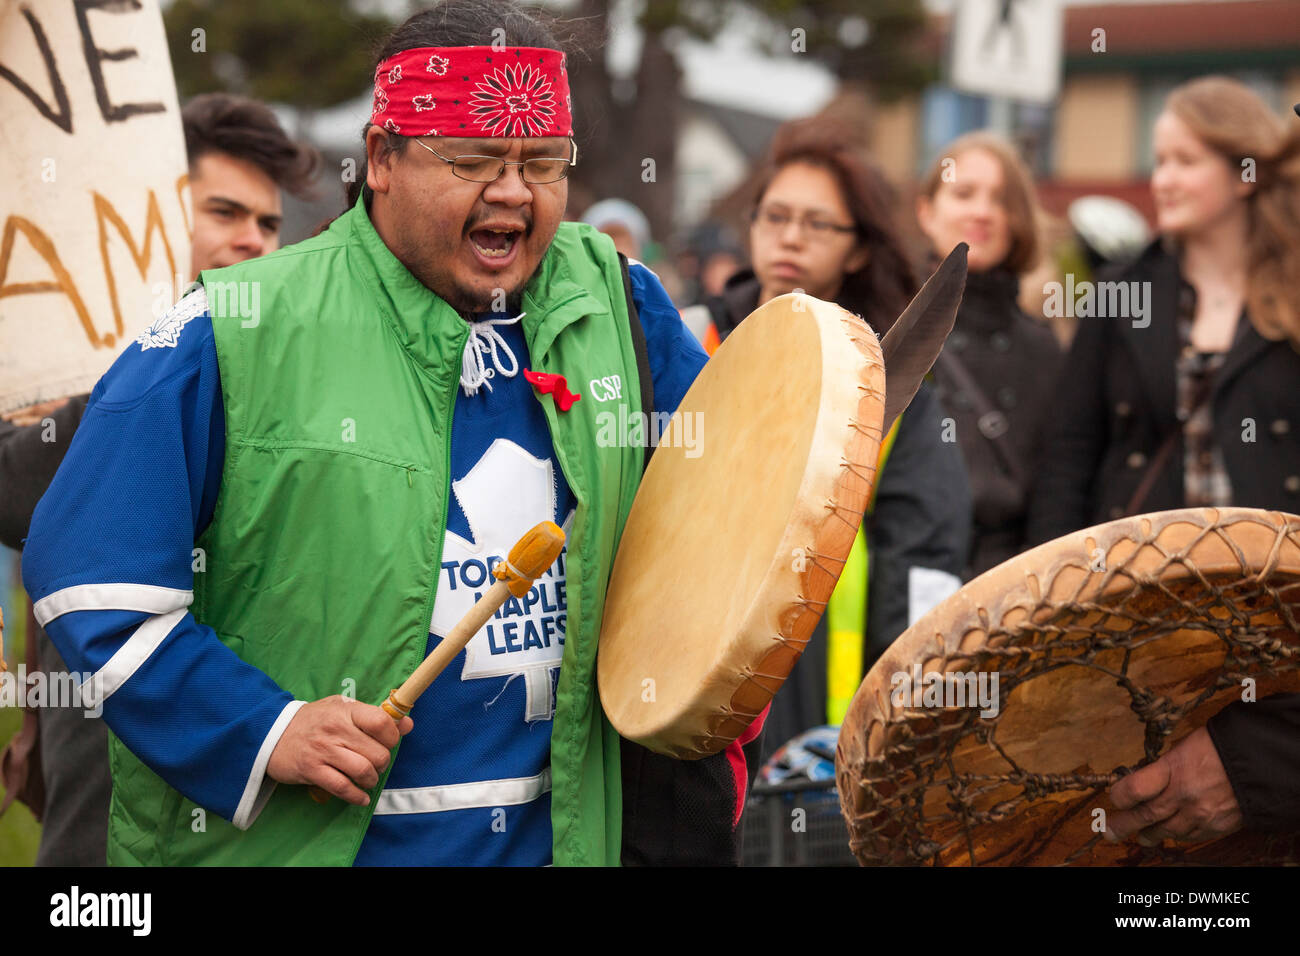 Aboriginal First nations man beating drum with demonstrators at Anti oil pipeline rally-Victoria, British Columbia, Canada. - Stock Image